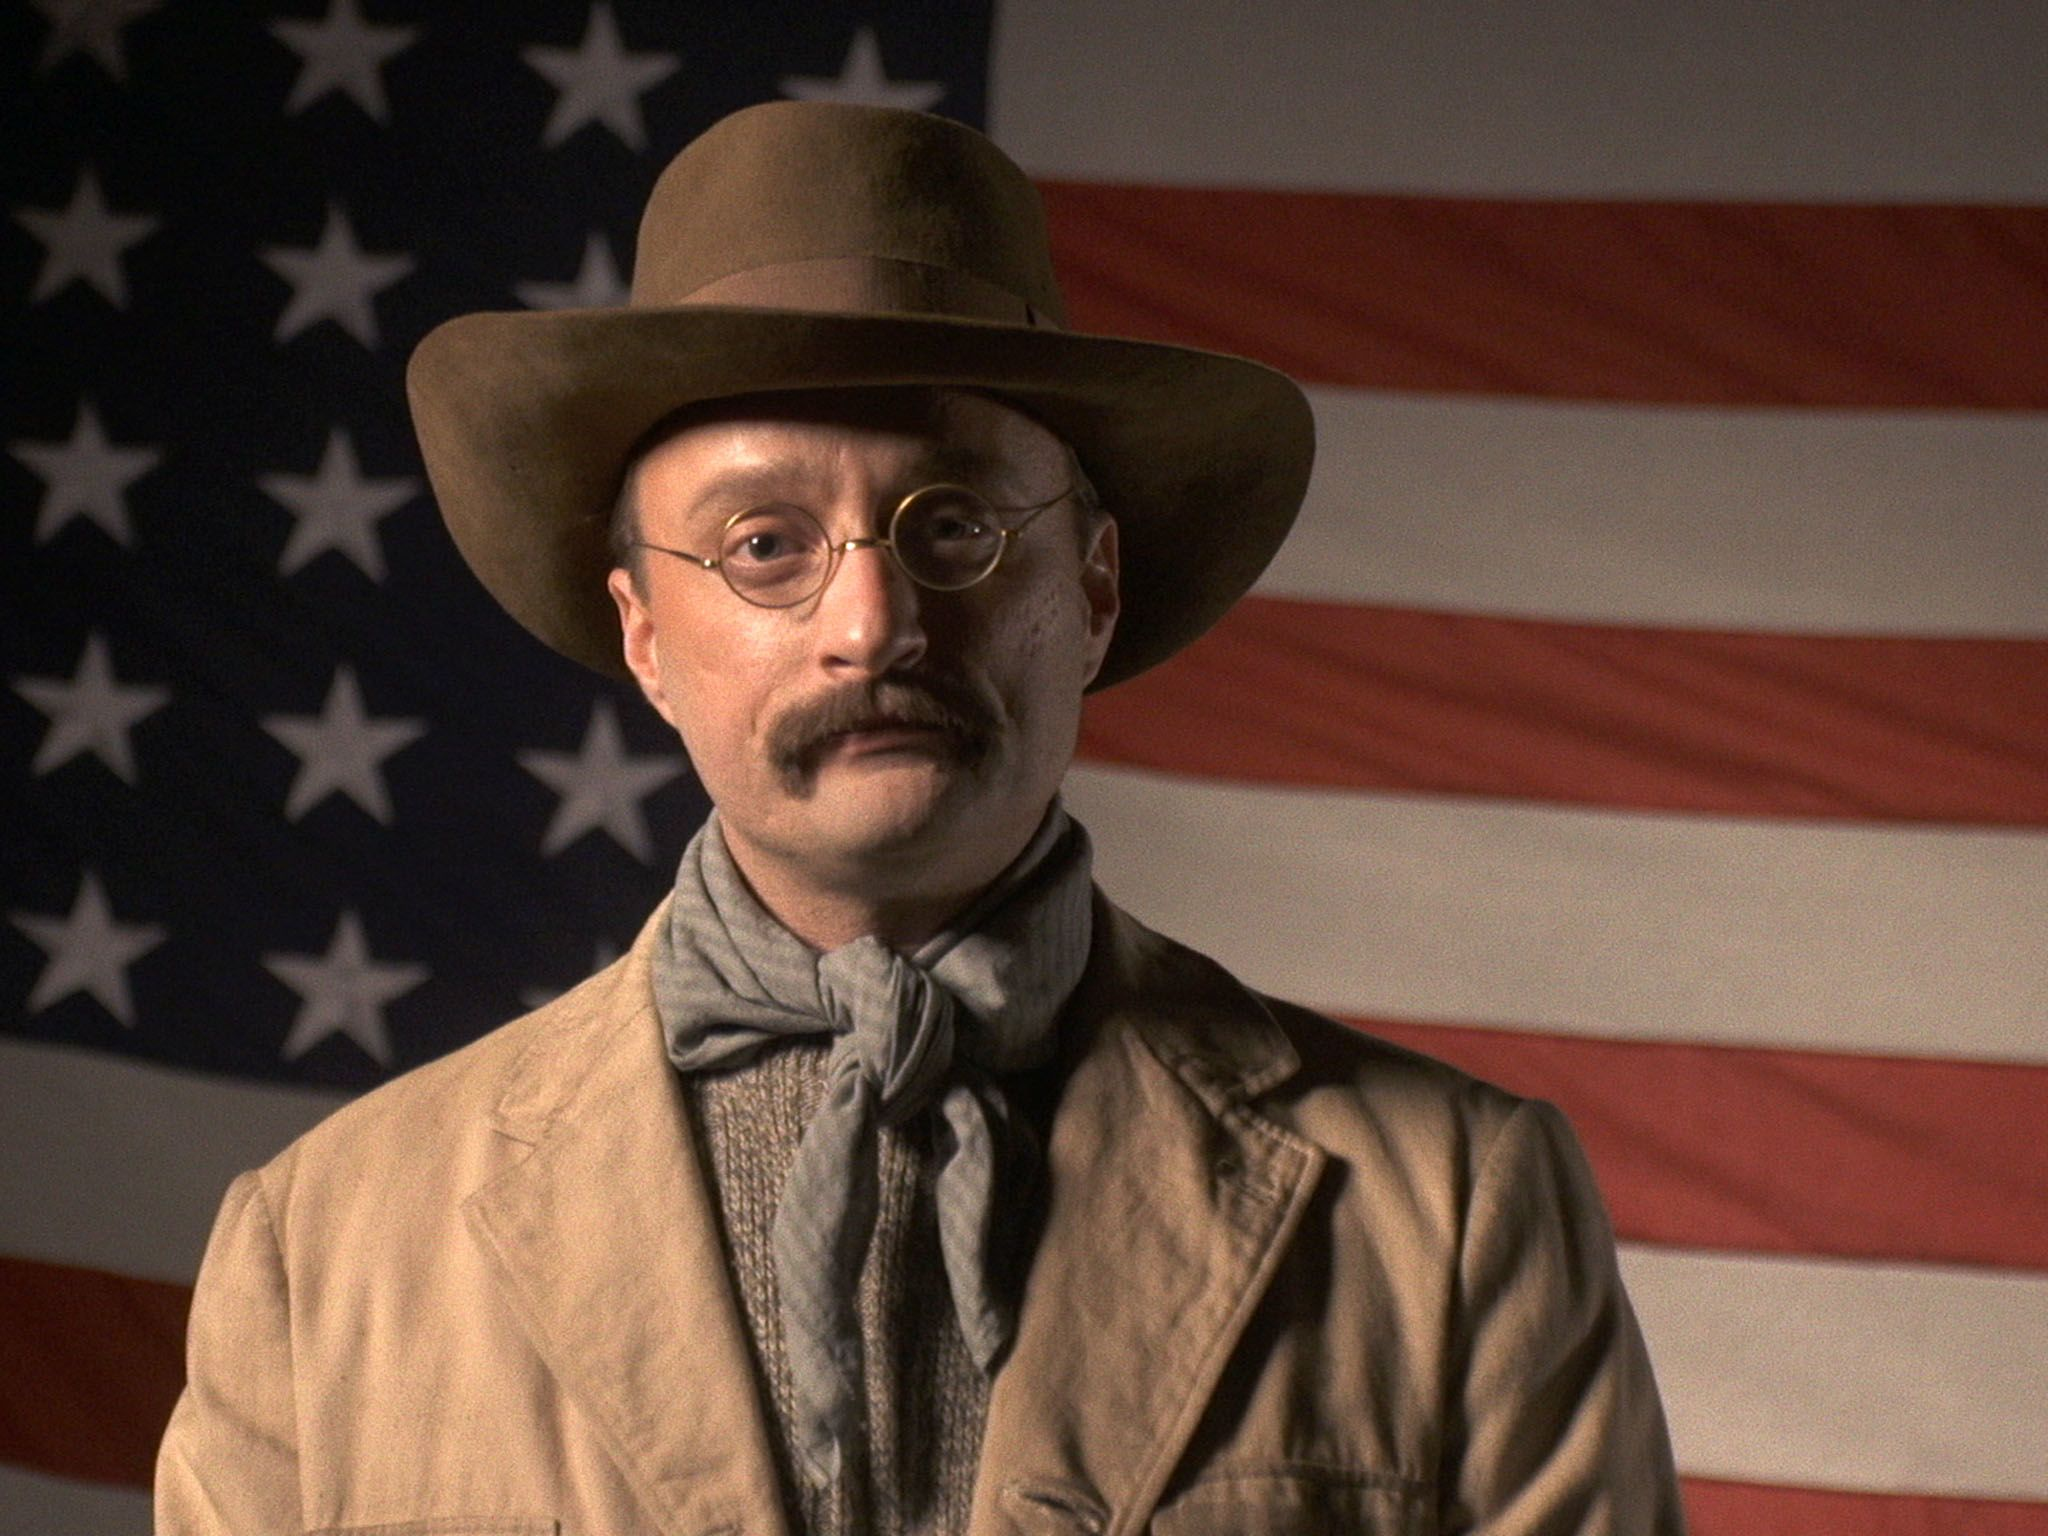 Reenactment: Teddy Roosevelt (played by Jack Elliot) speaks about land conservation. This image... [Photo of the day - سپتامبر 2016]